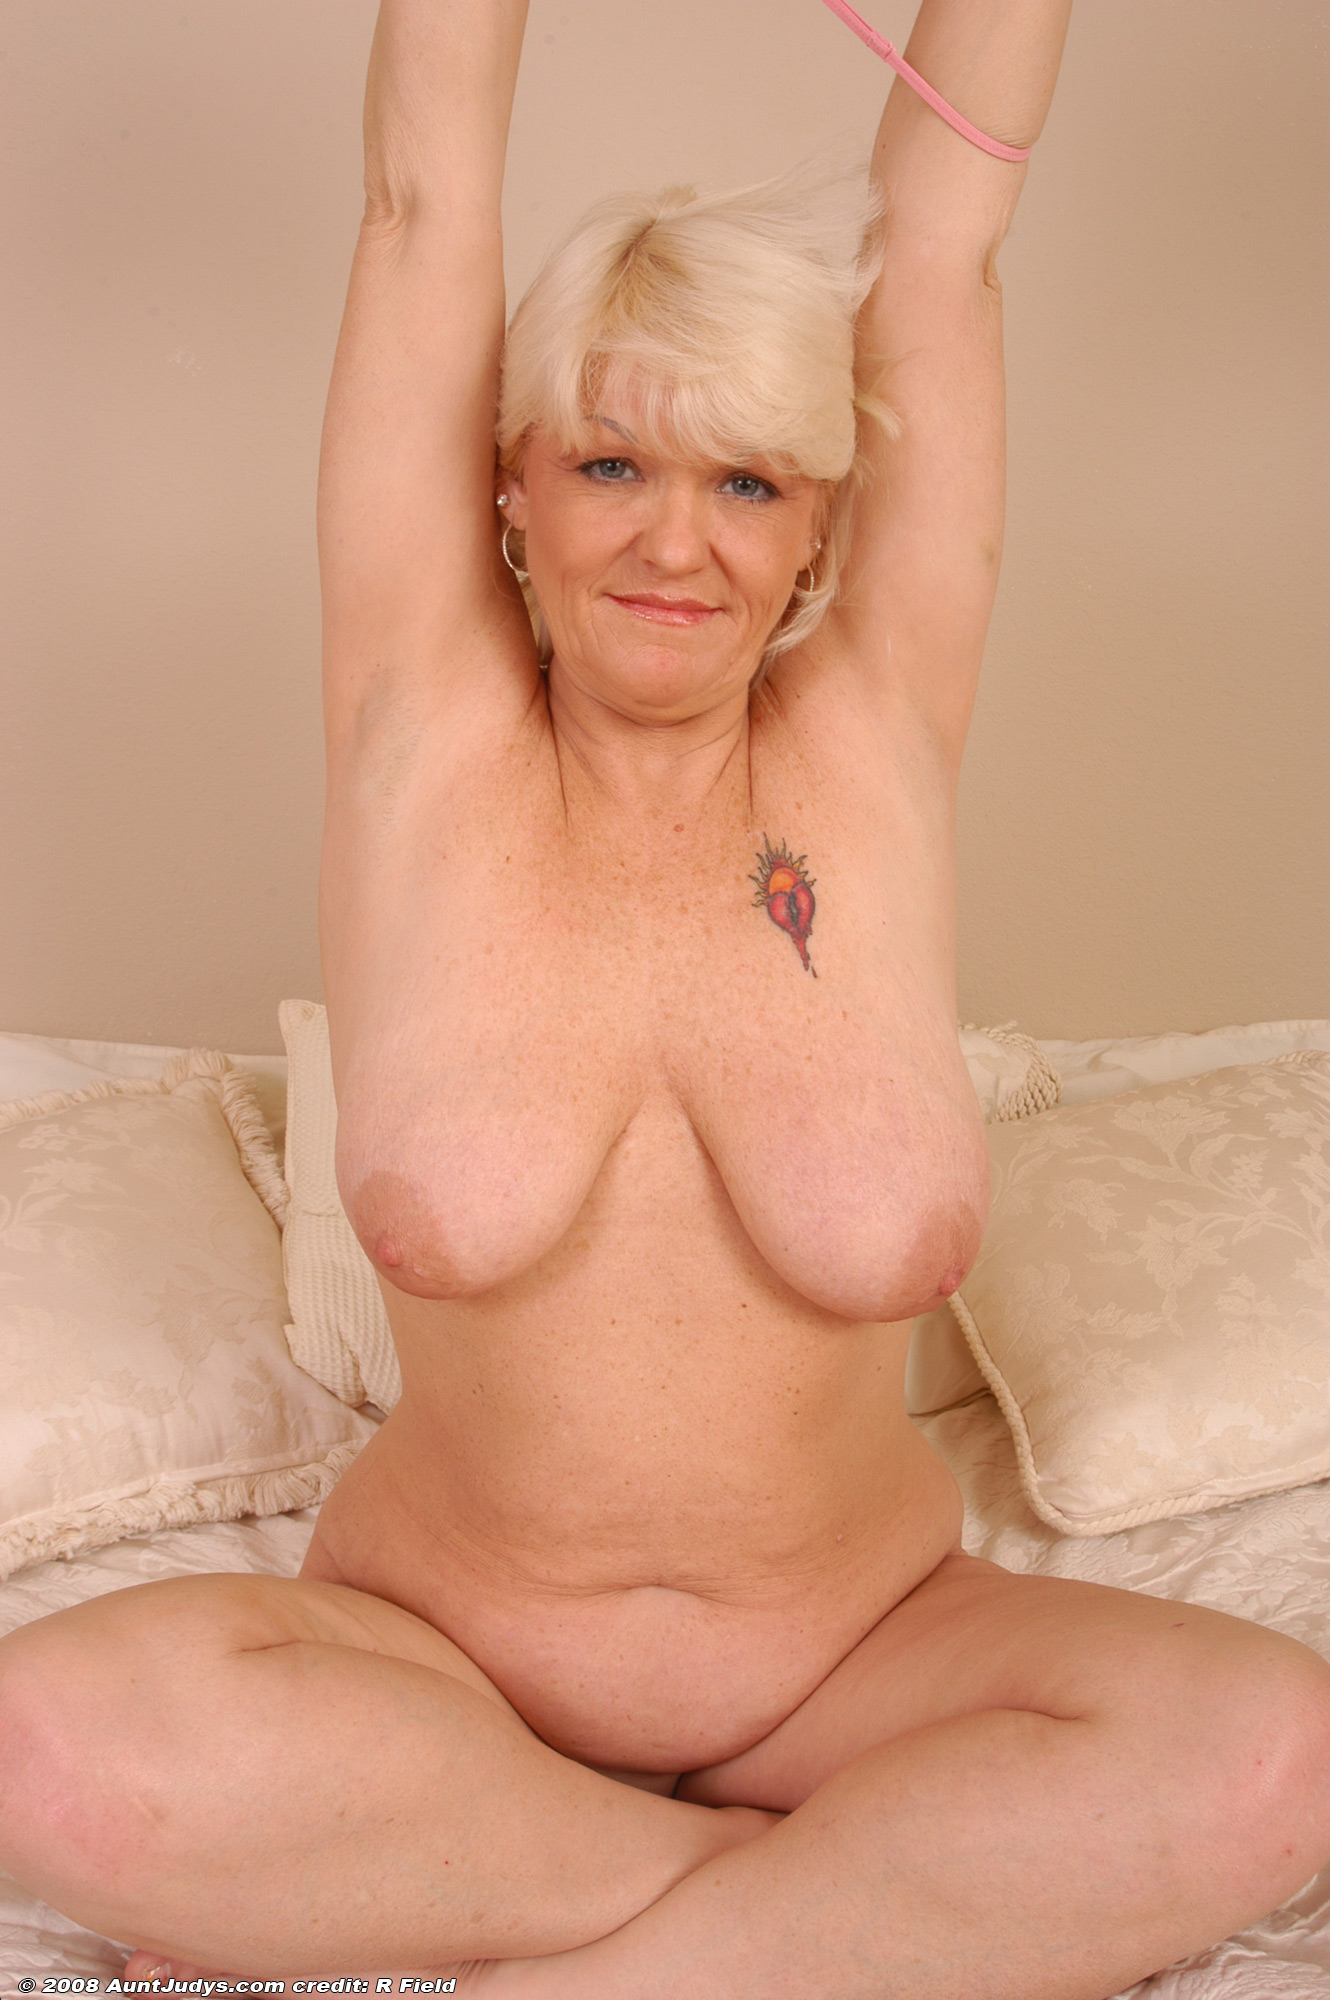 Aunt judys free galleries